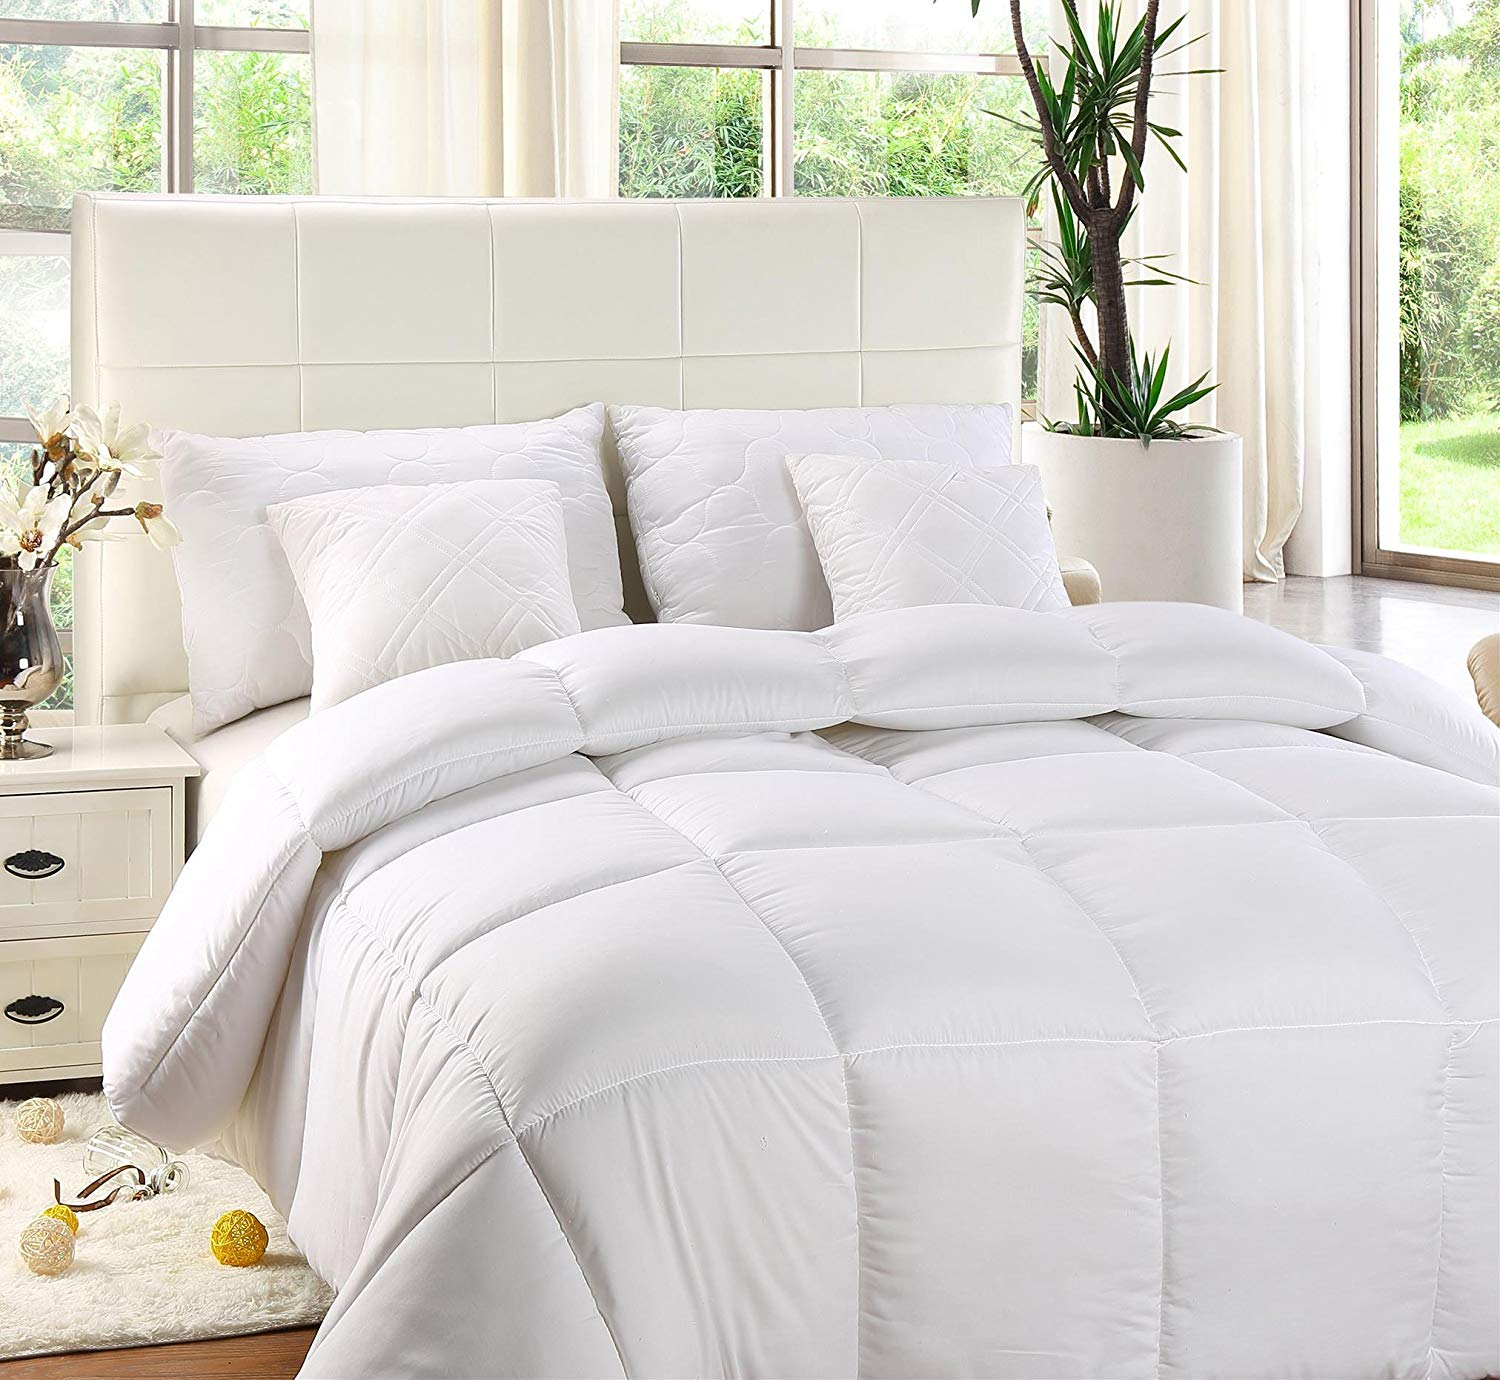 Utopia Bedding Best Comforter Review by www.snoremagazine.com